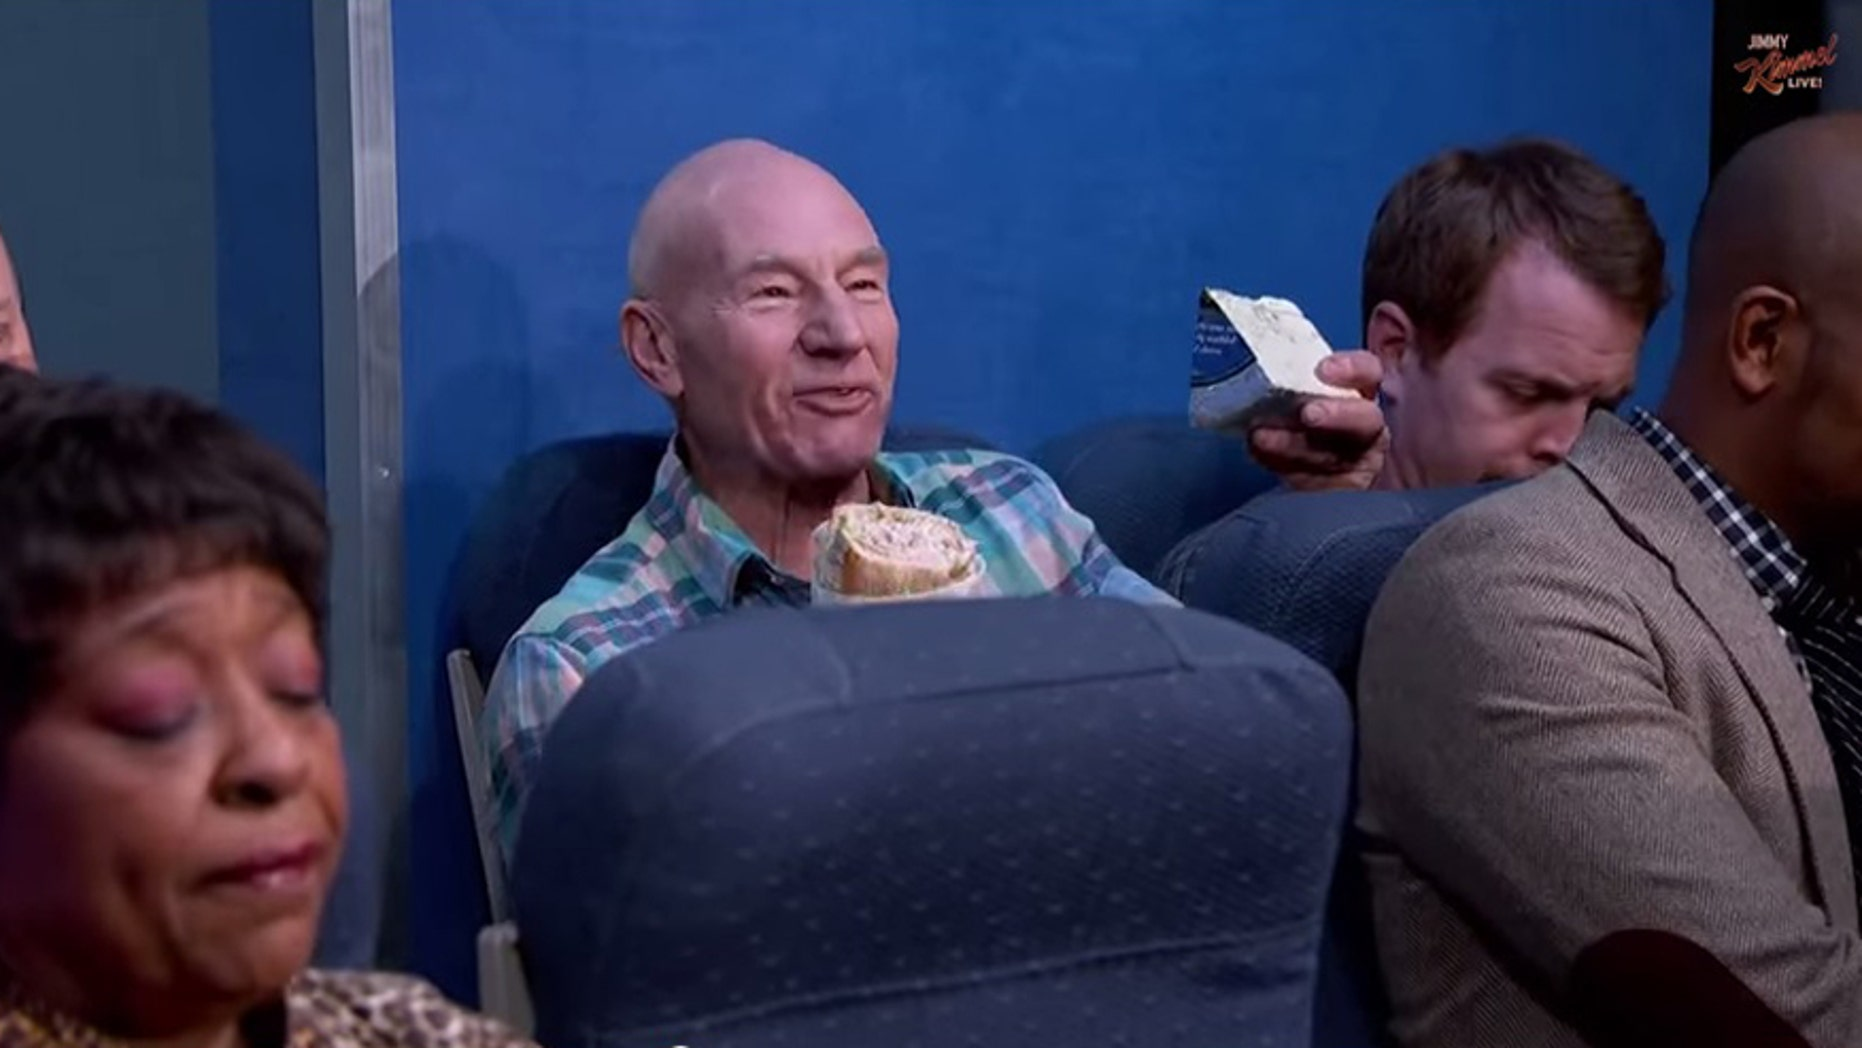 No one wants to sit next to someone eating a smelly sandwich.